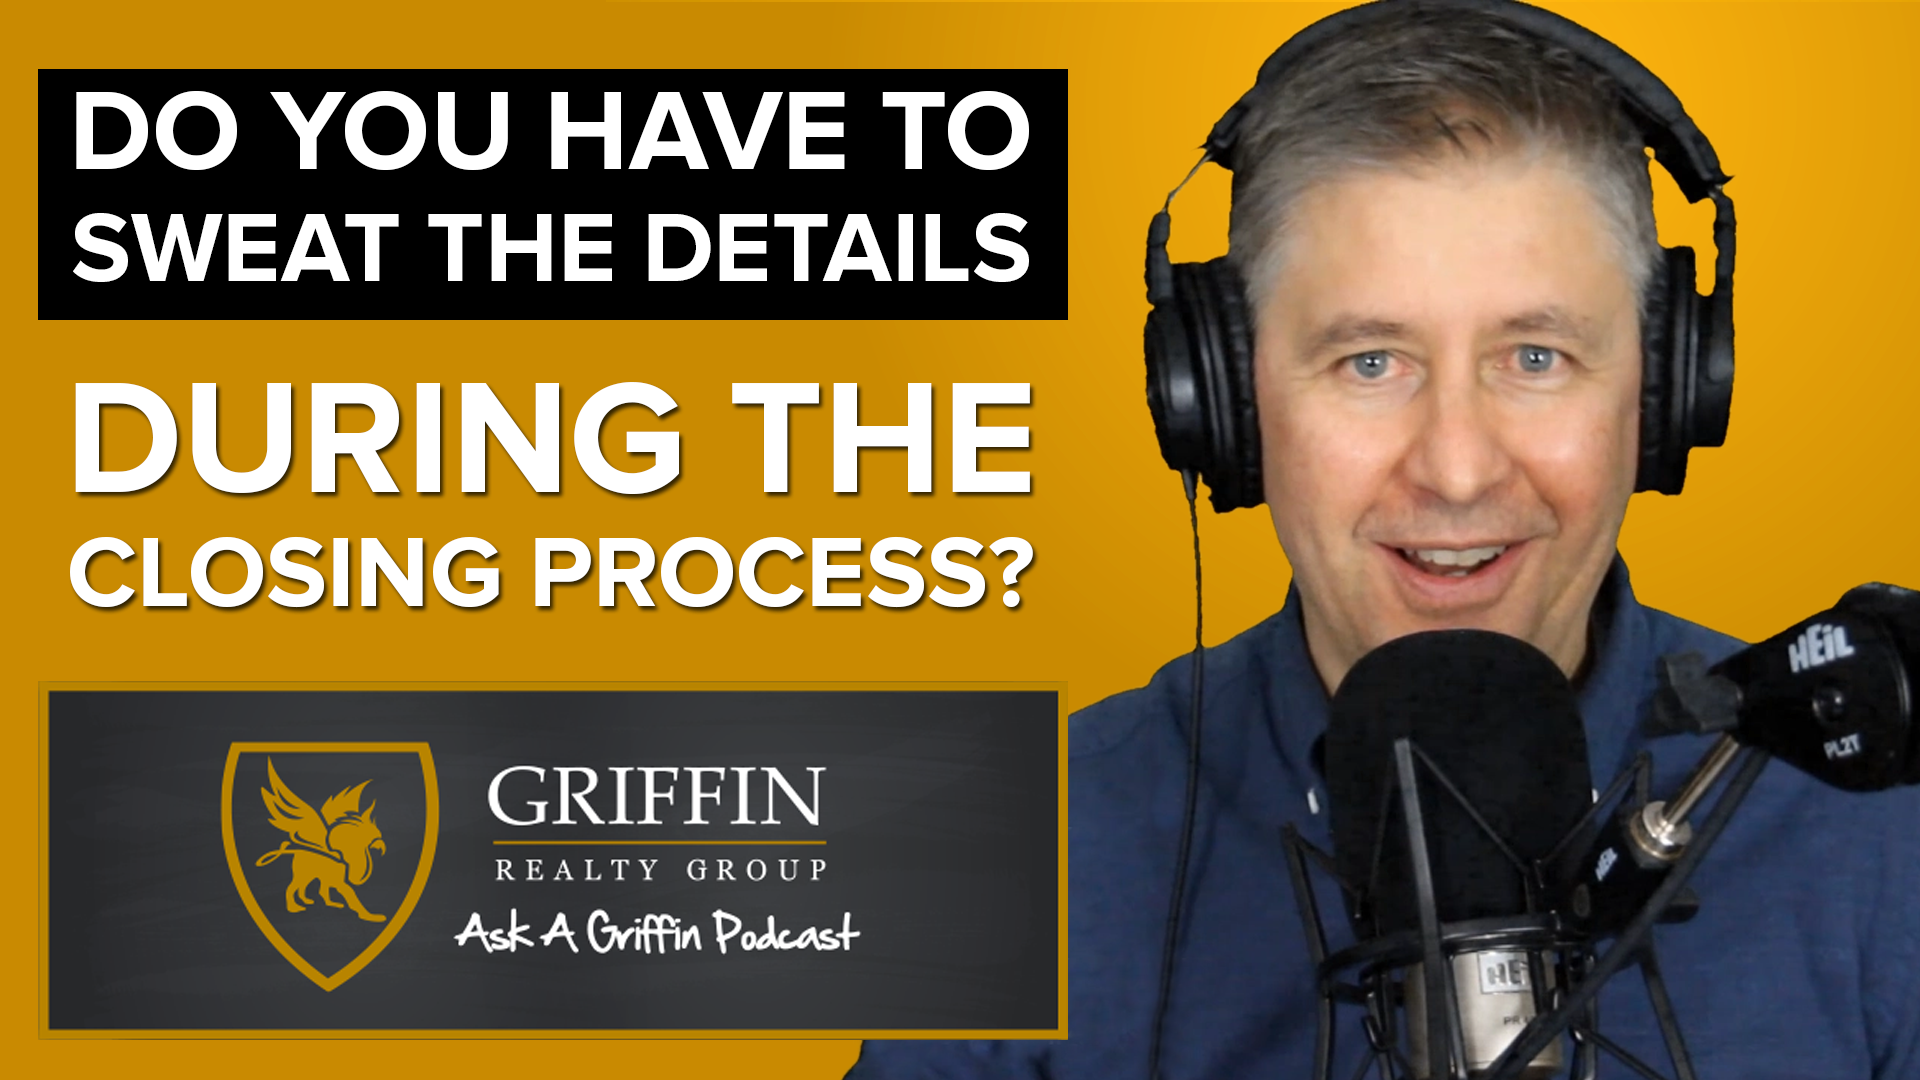 Do You Have To Sweat The Details During The Closing Process?| The Griffin Realty Group | Ask-A-Griffin Podcast #47